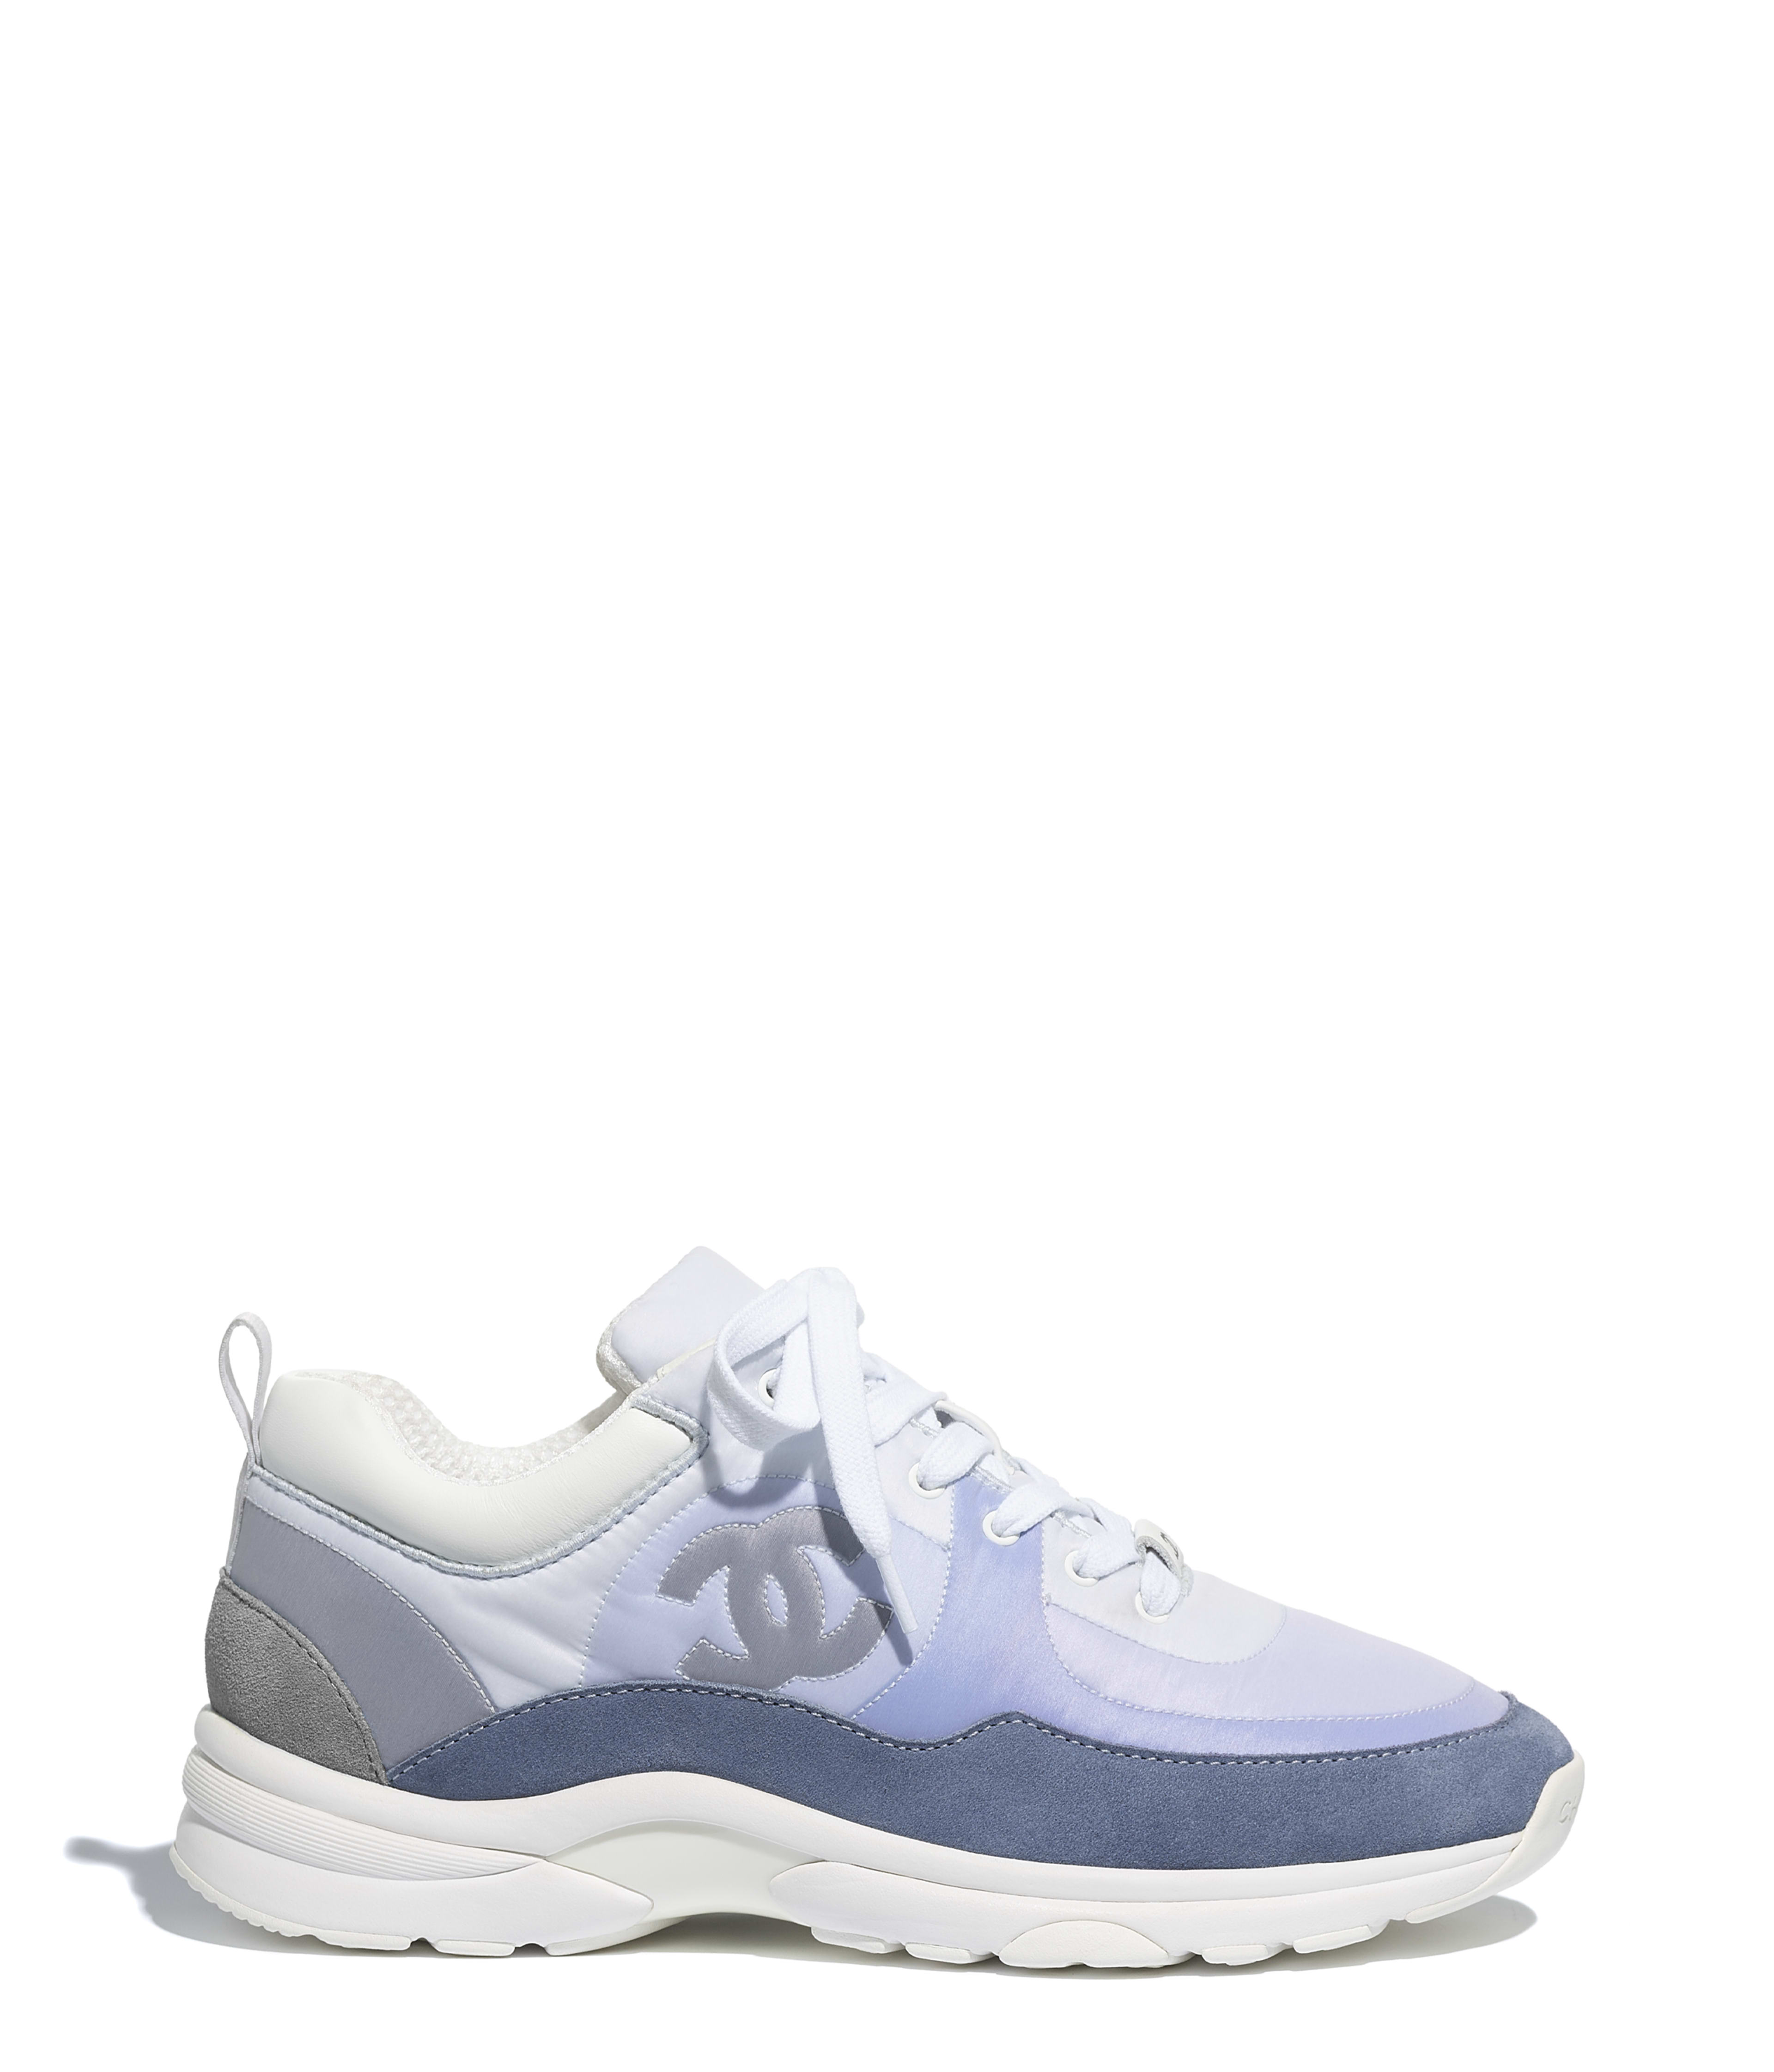 Sneakers - Shoes   CHANEL